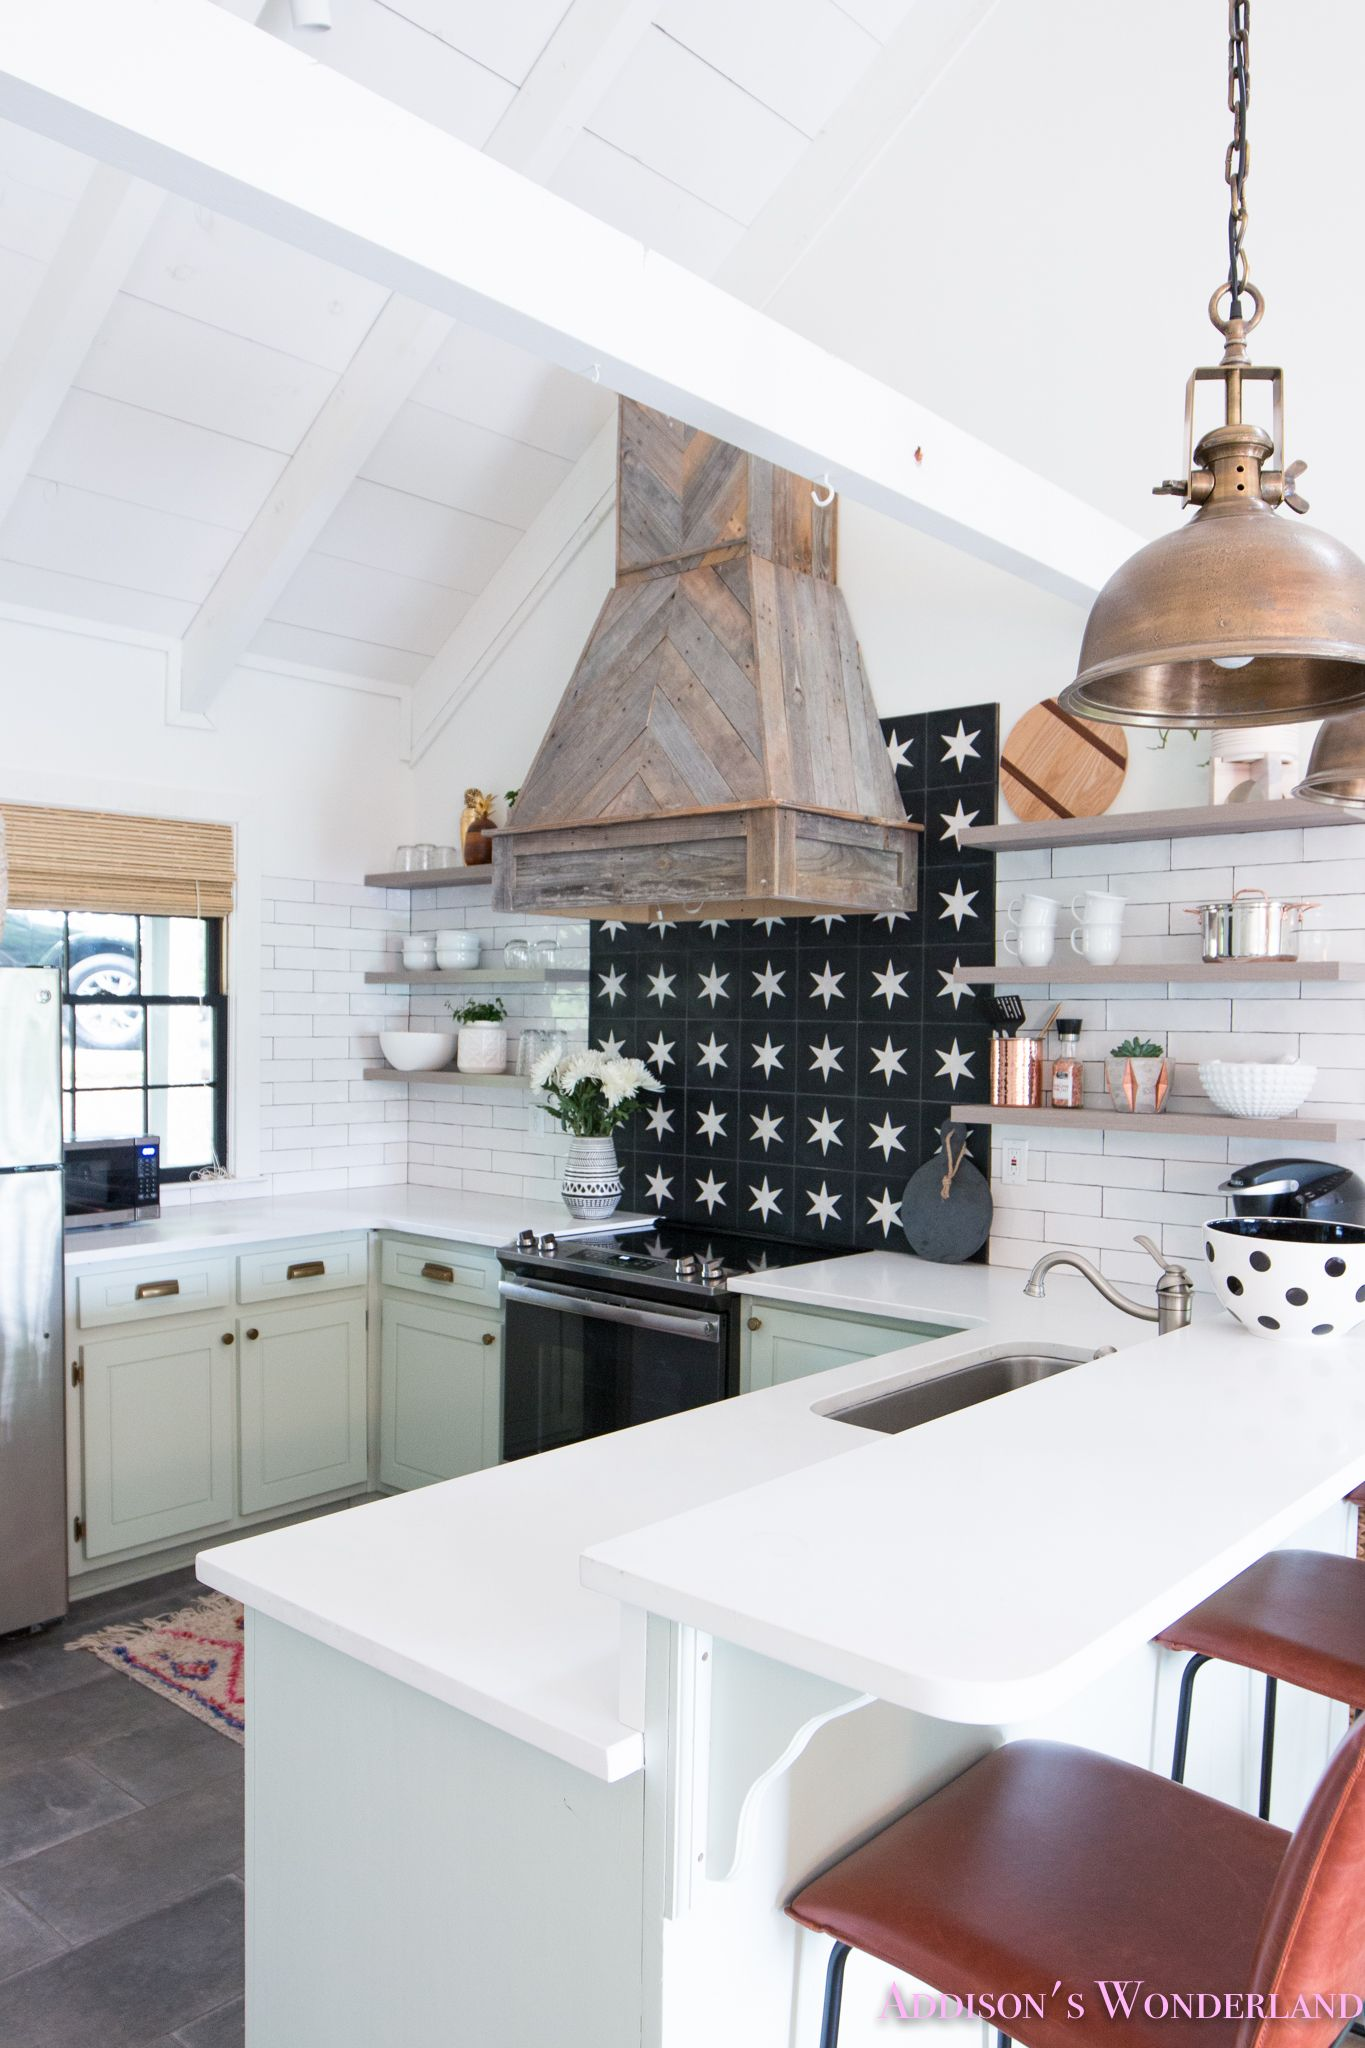 The full reveal of our white cabin kitchen w light mint green